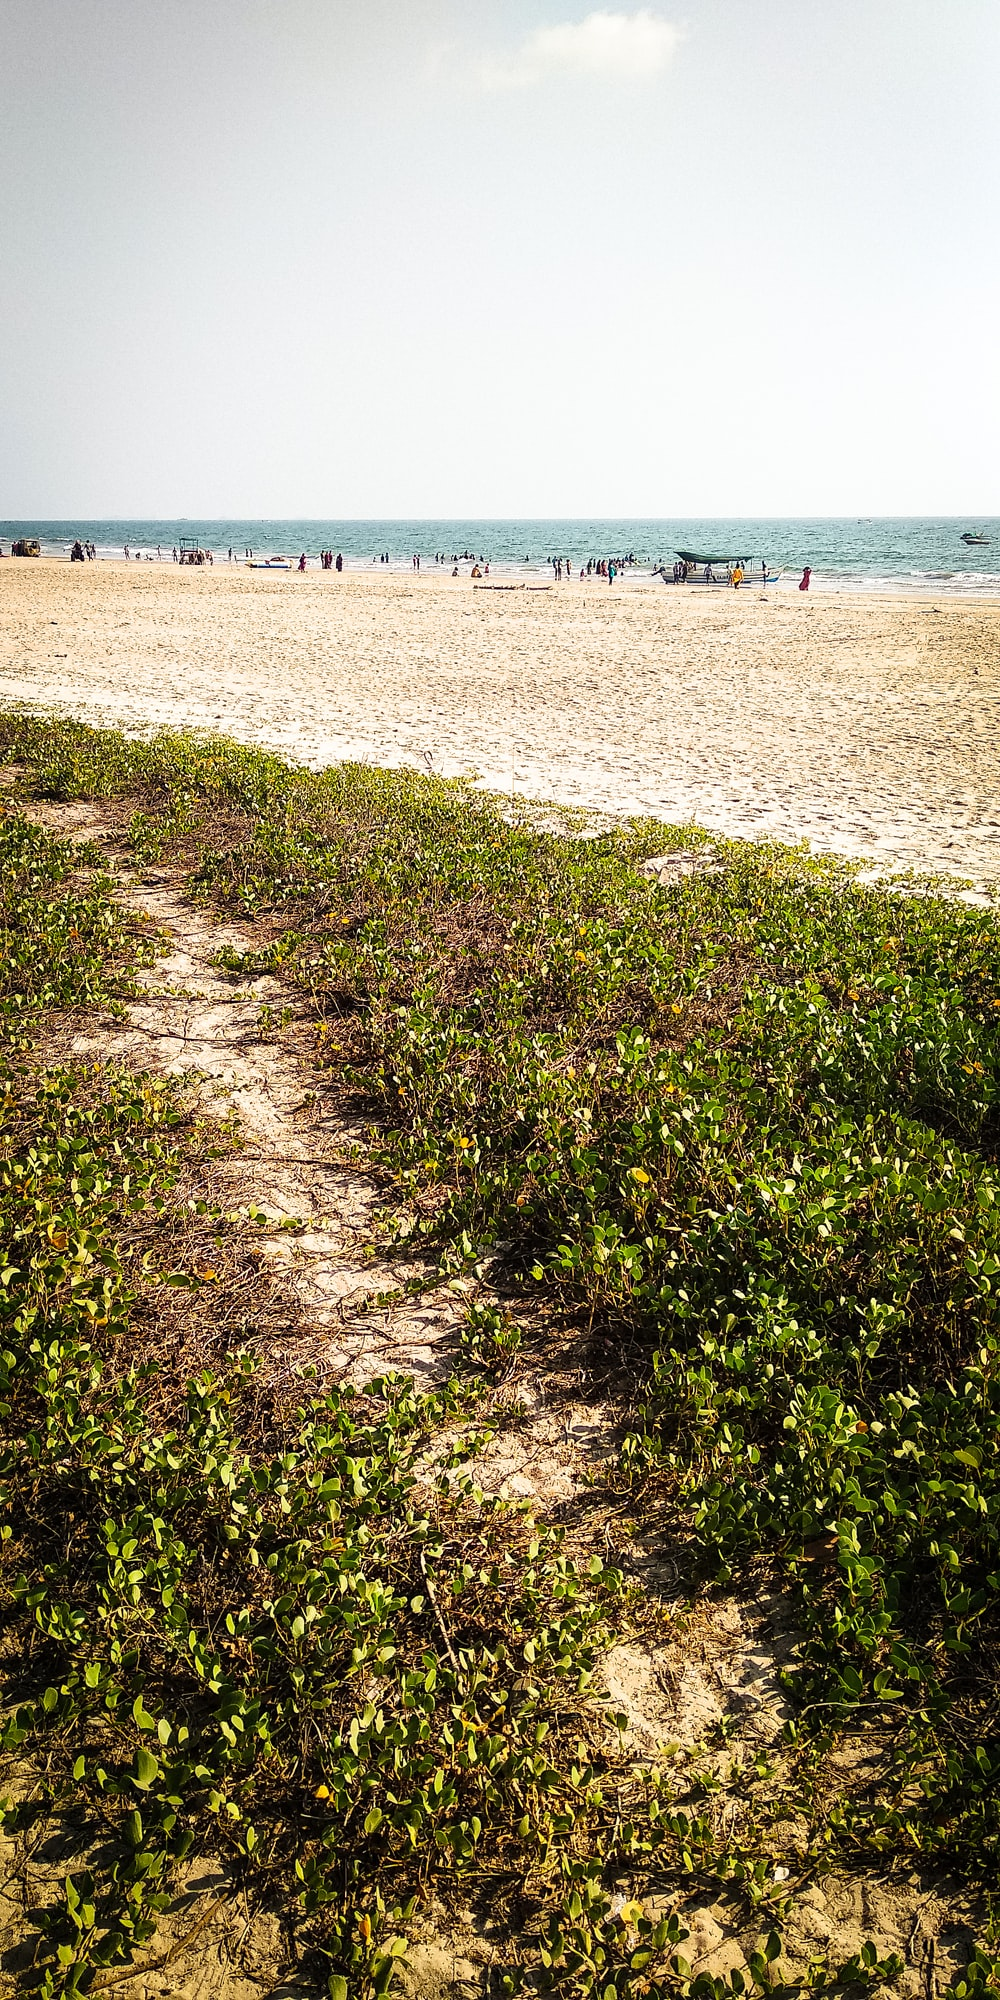 green grass near shore and sea during daytime